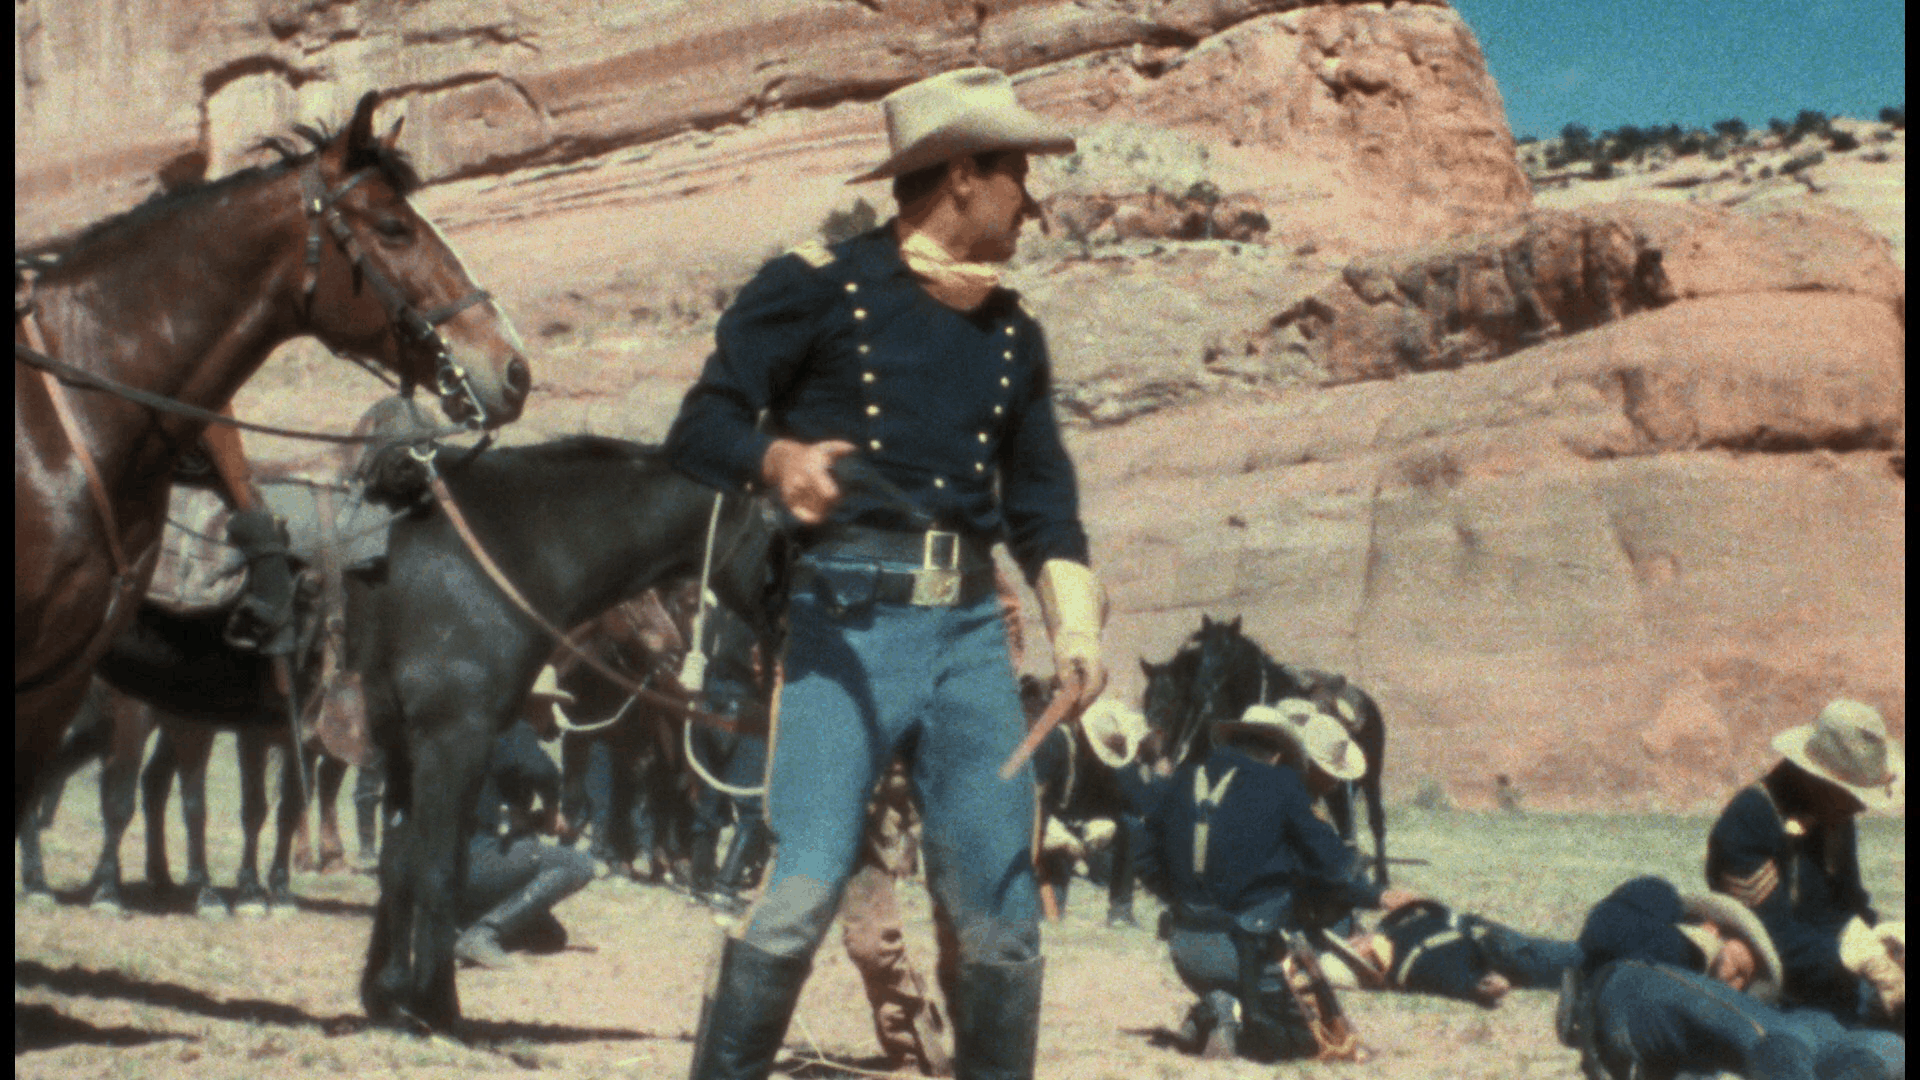 Escape from Fort Bravo (1953) [Warner Archive Blu-ray review] 6